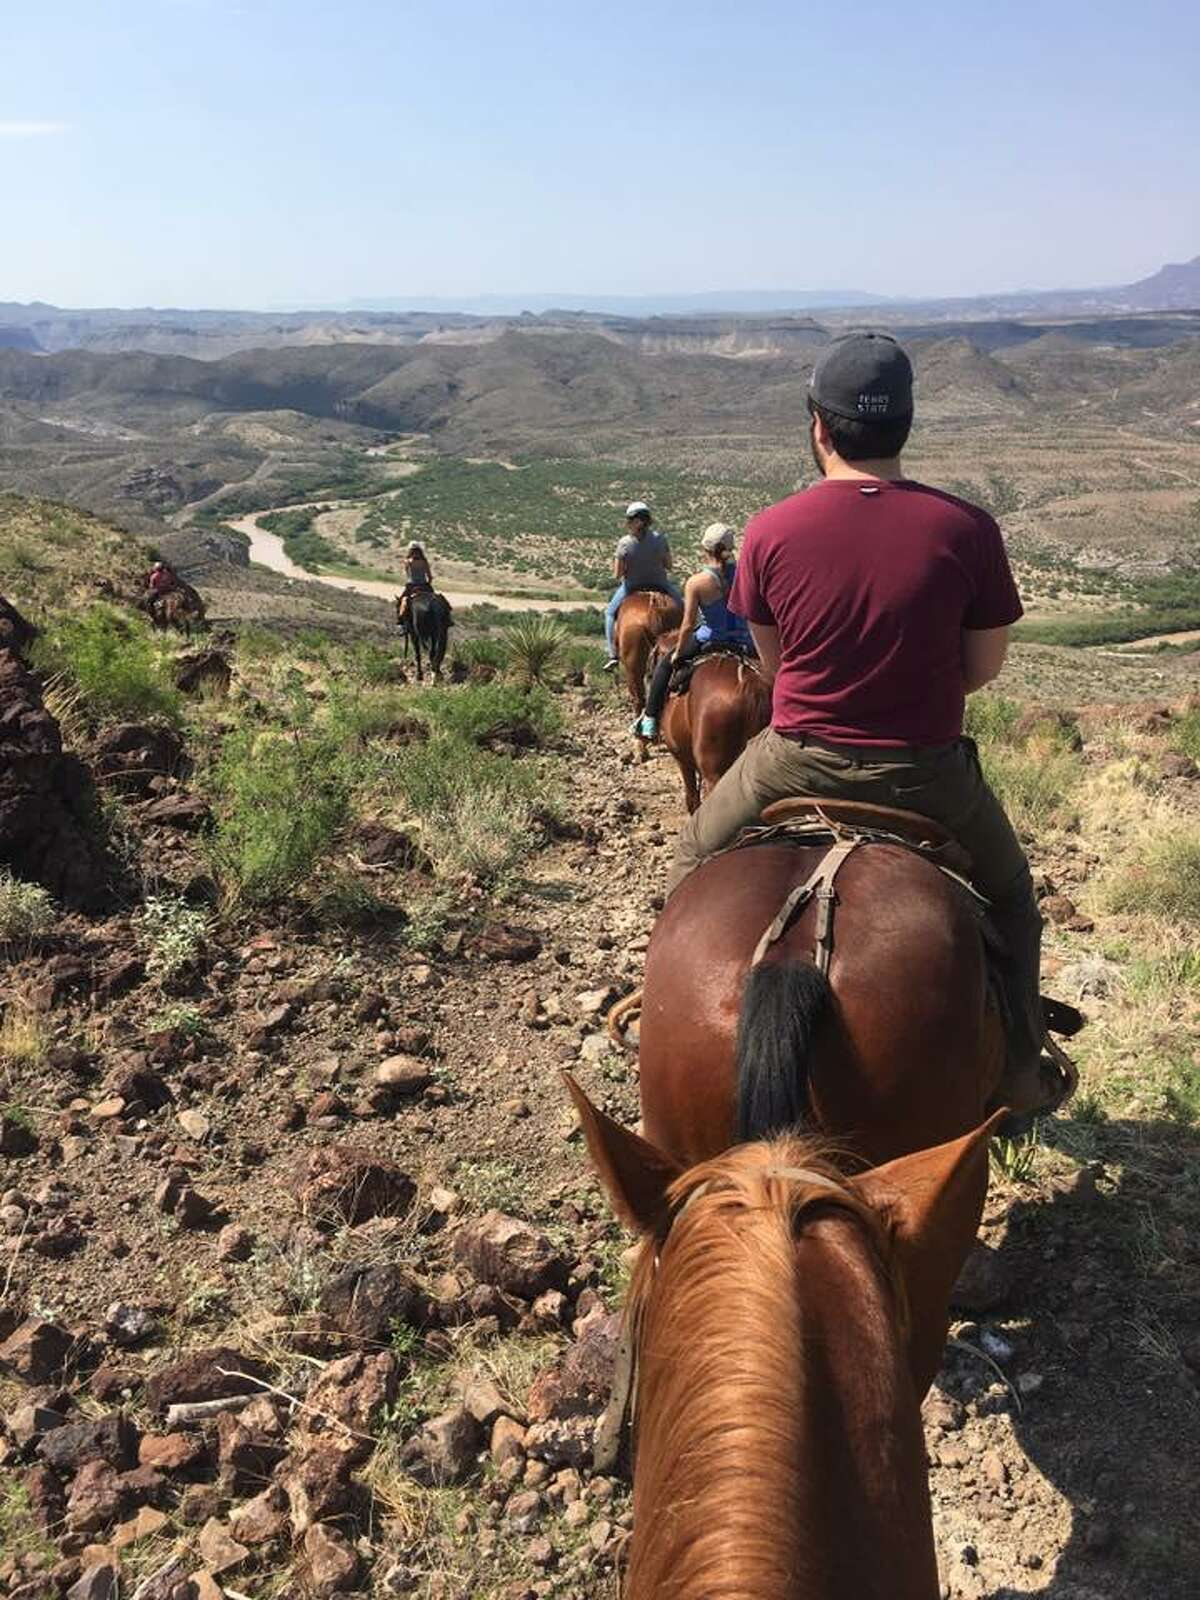 The horses rode over rocky terrain as mass communication students from Texas State University explored Big Bend Ranch State Park.